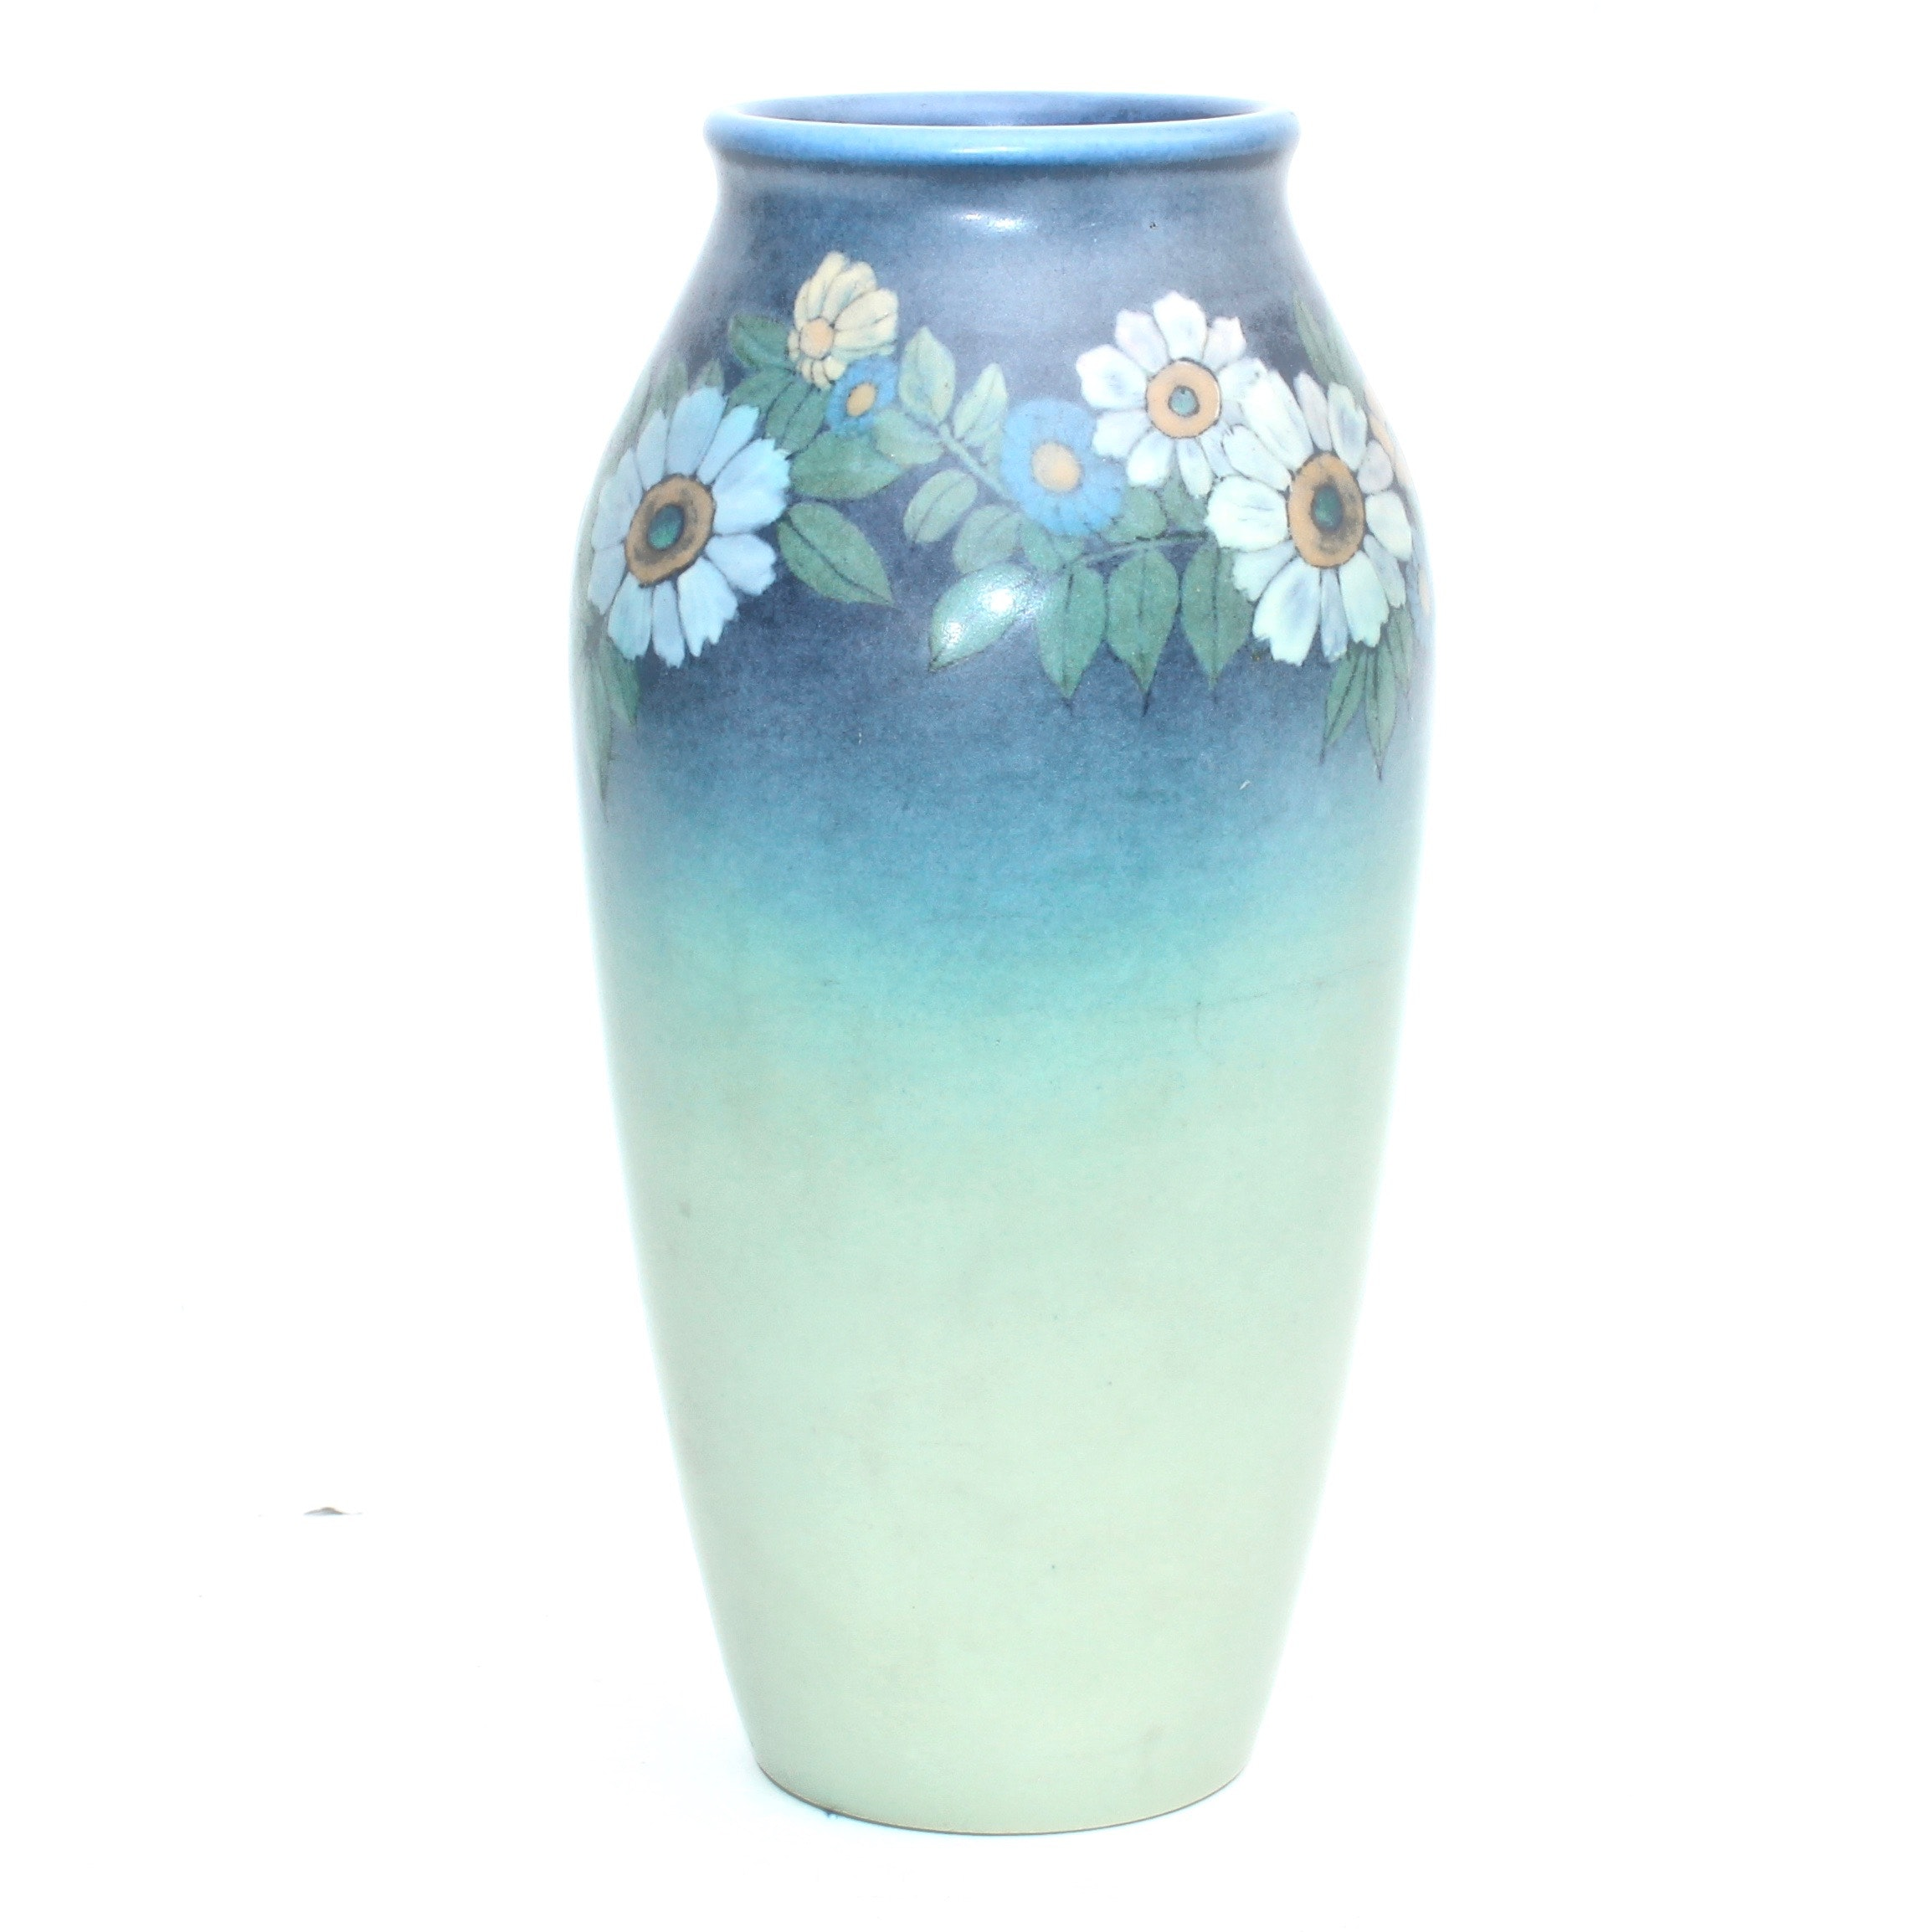 Rookwood Pottery Vase by Lenore Asbury